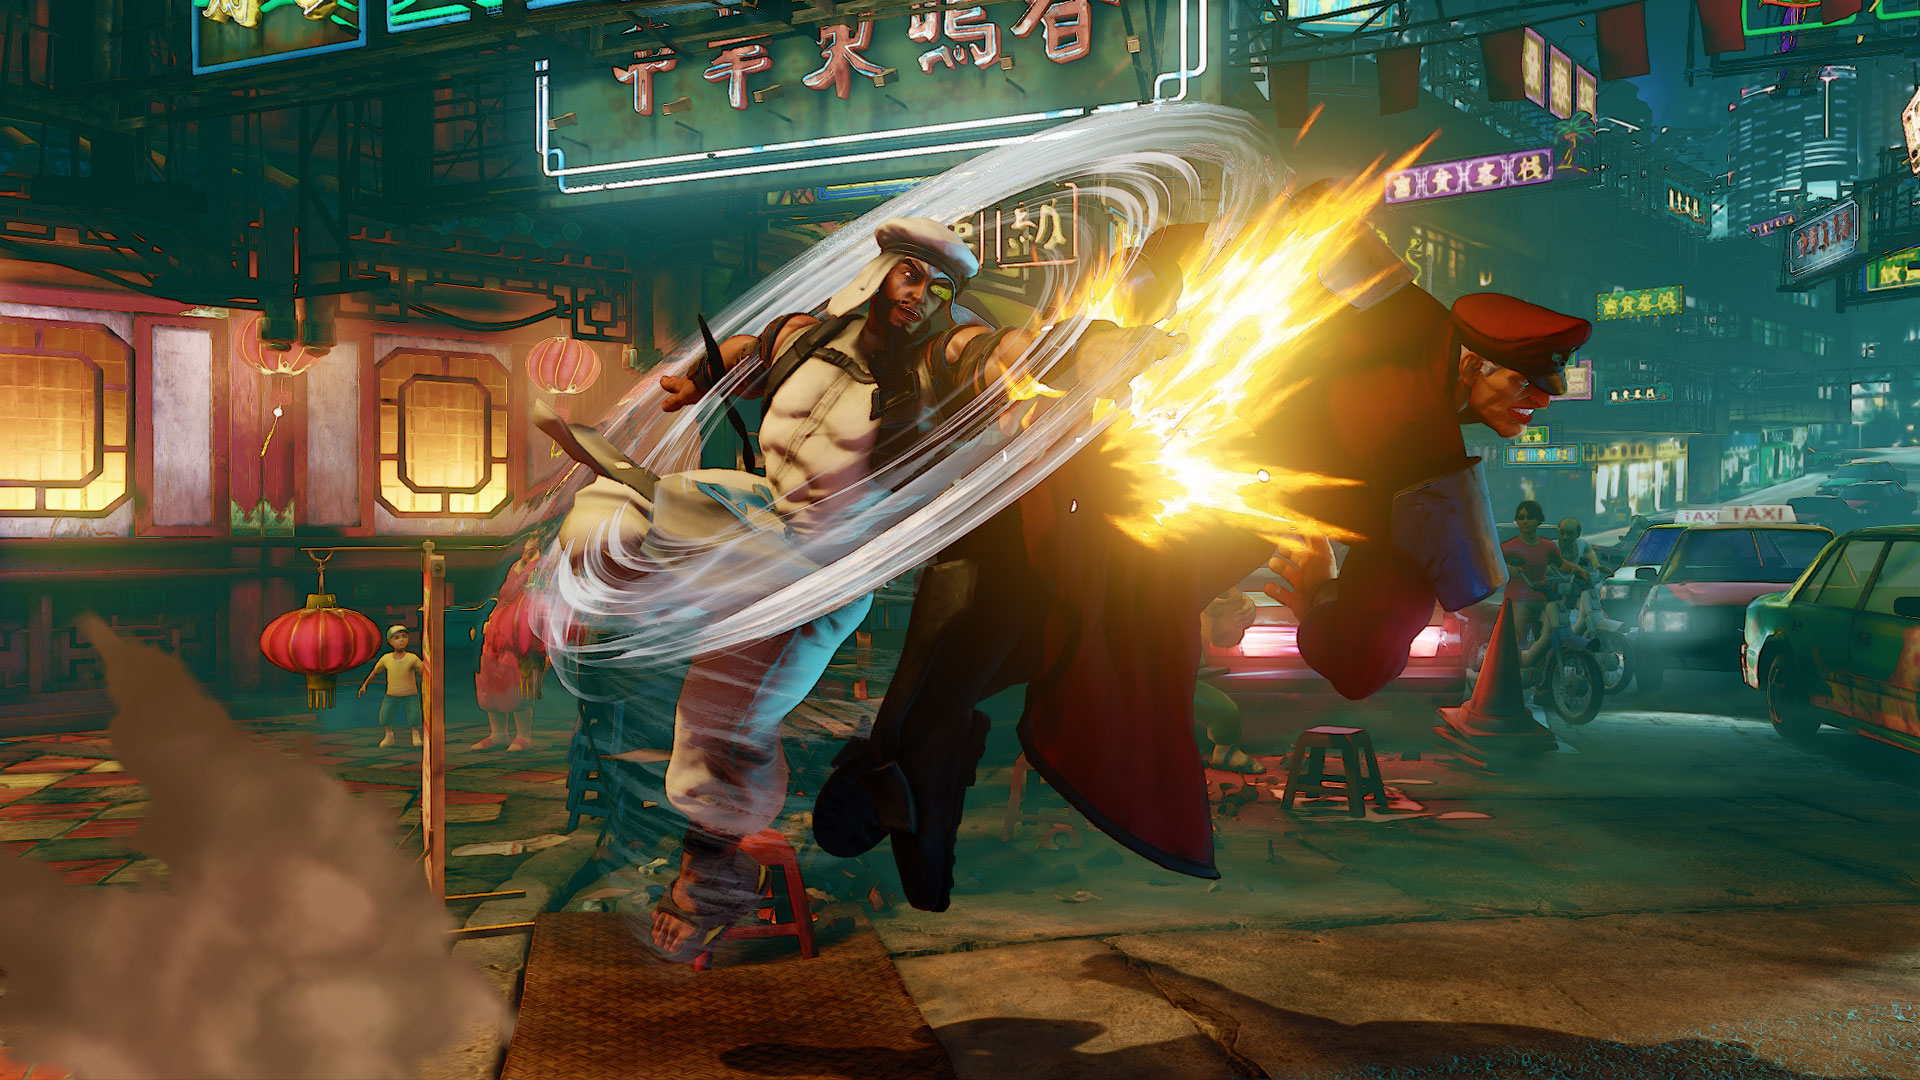 Street Fighter V Rashid Hd Wallpaper Rashid Street Fighter